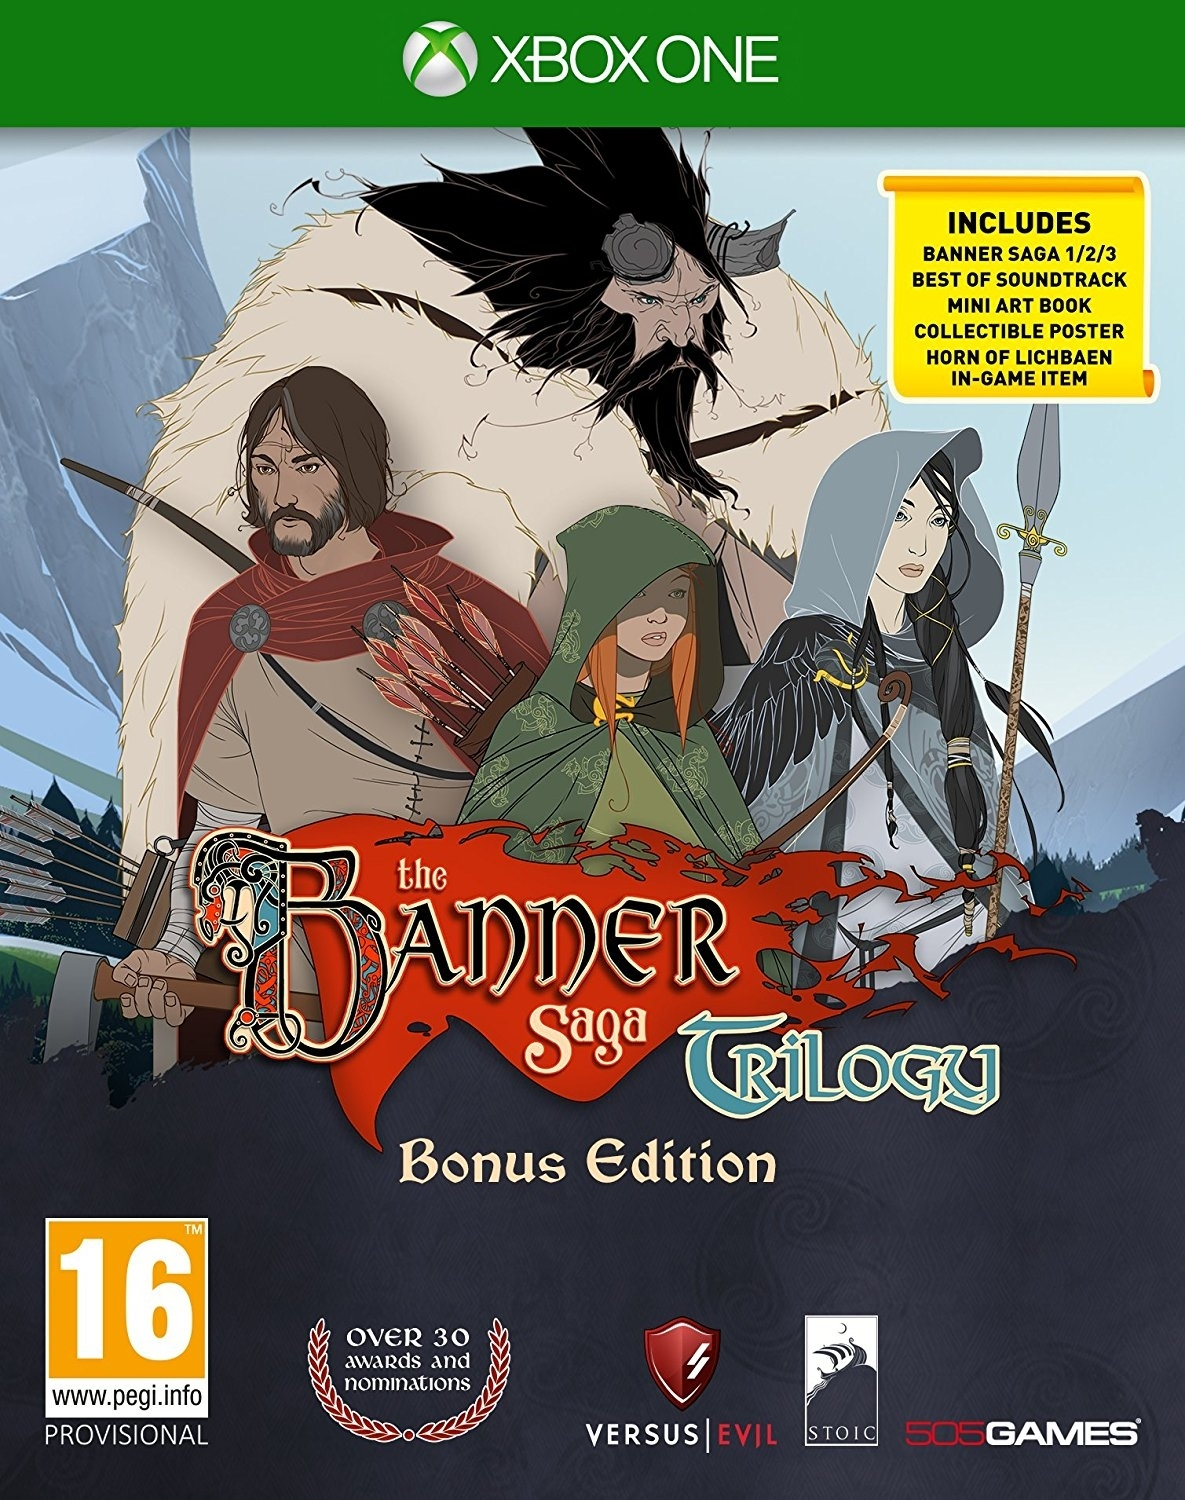 The Banner Saga Trilogy: Bonus Edition PL (Xbox One)